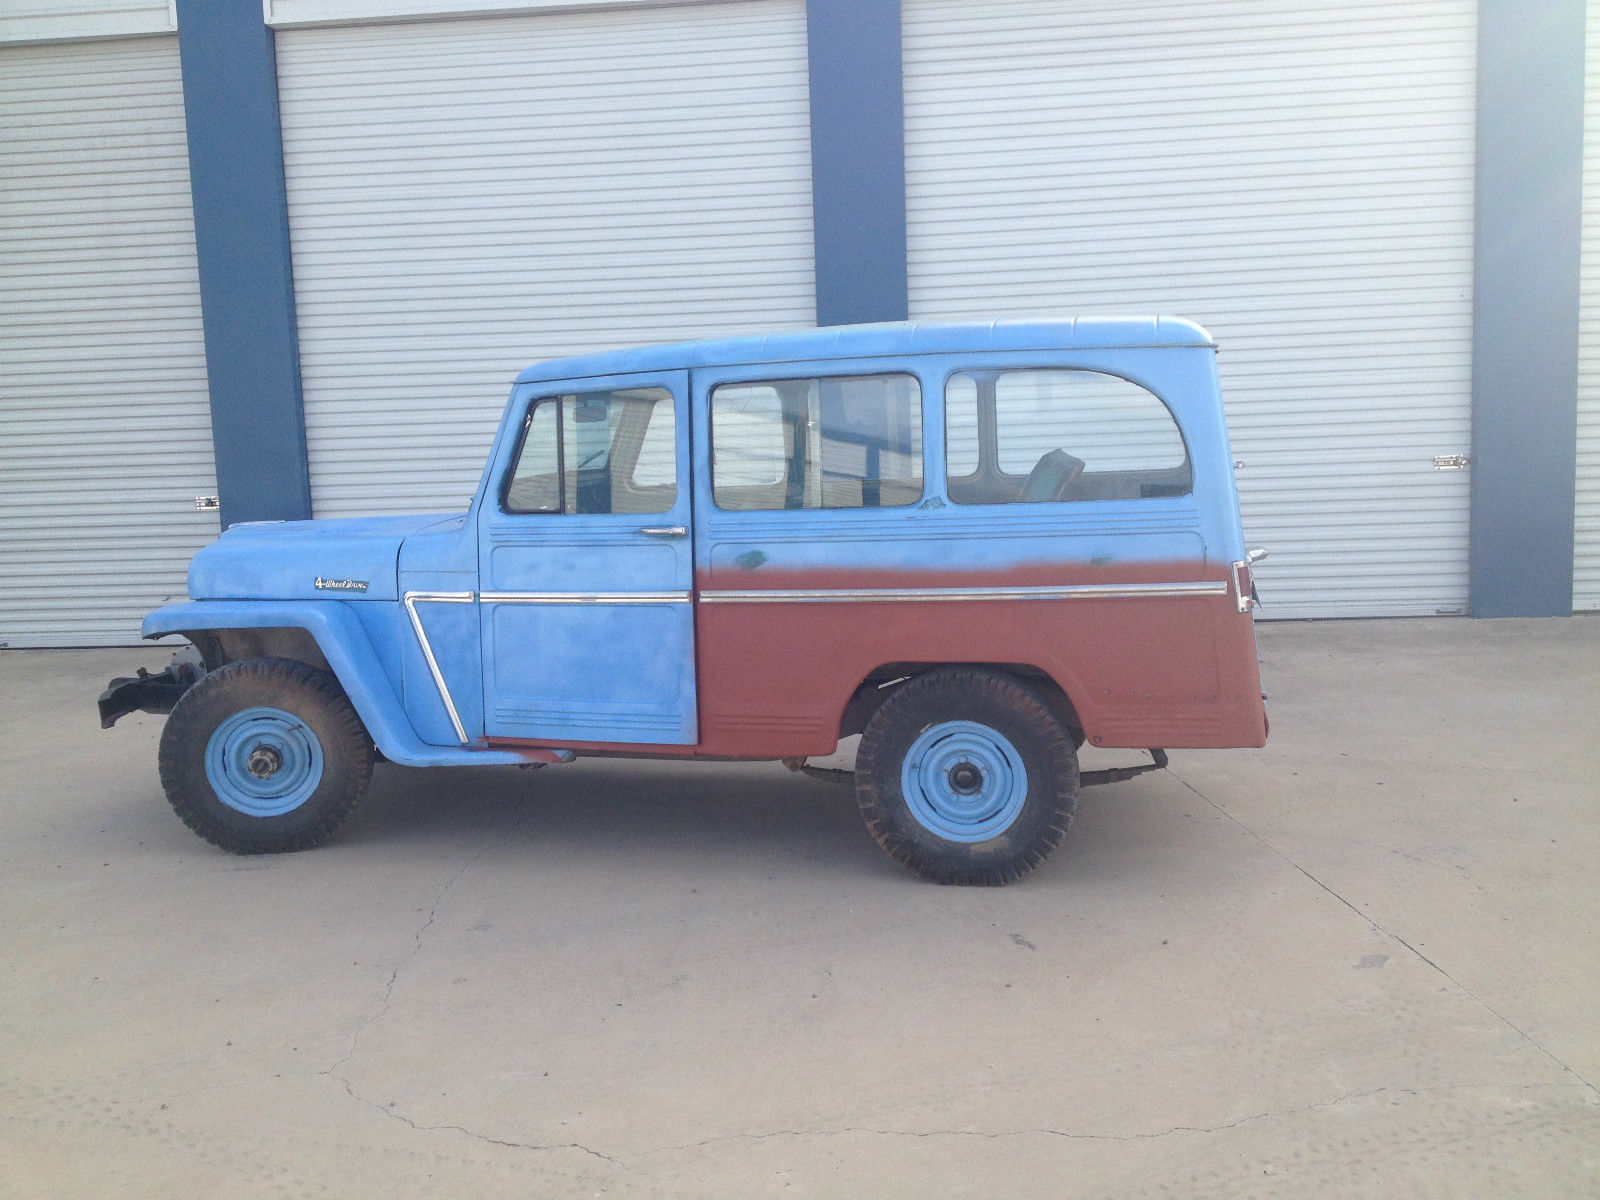 1962 Willys Station Wagon 1941 Jeep This Is Cool Needs Work And In Stock Form Would